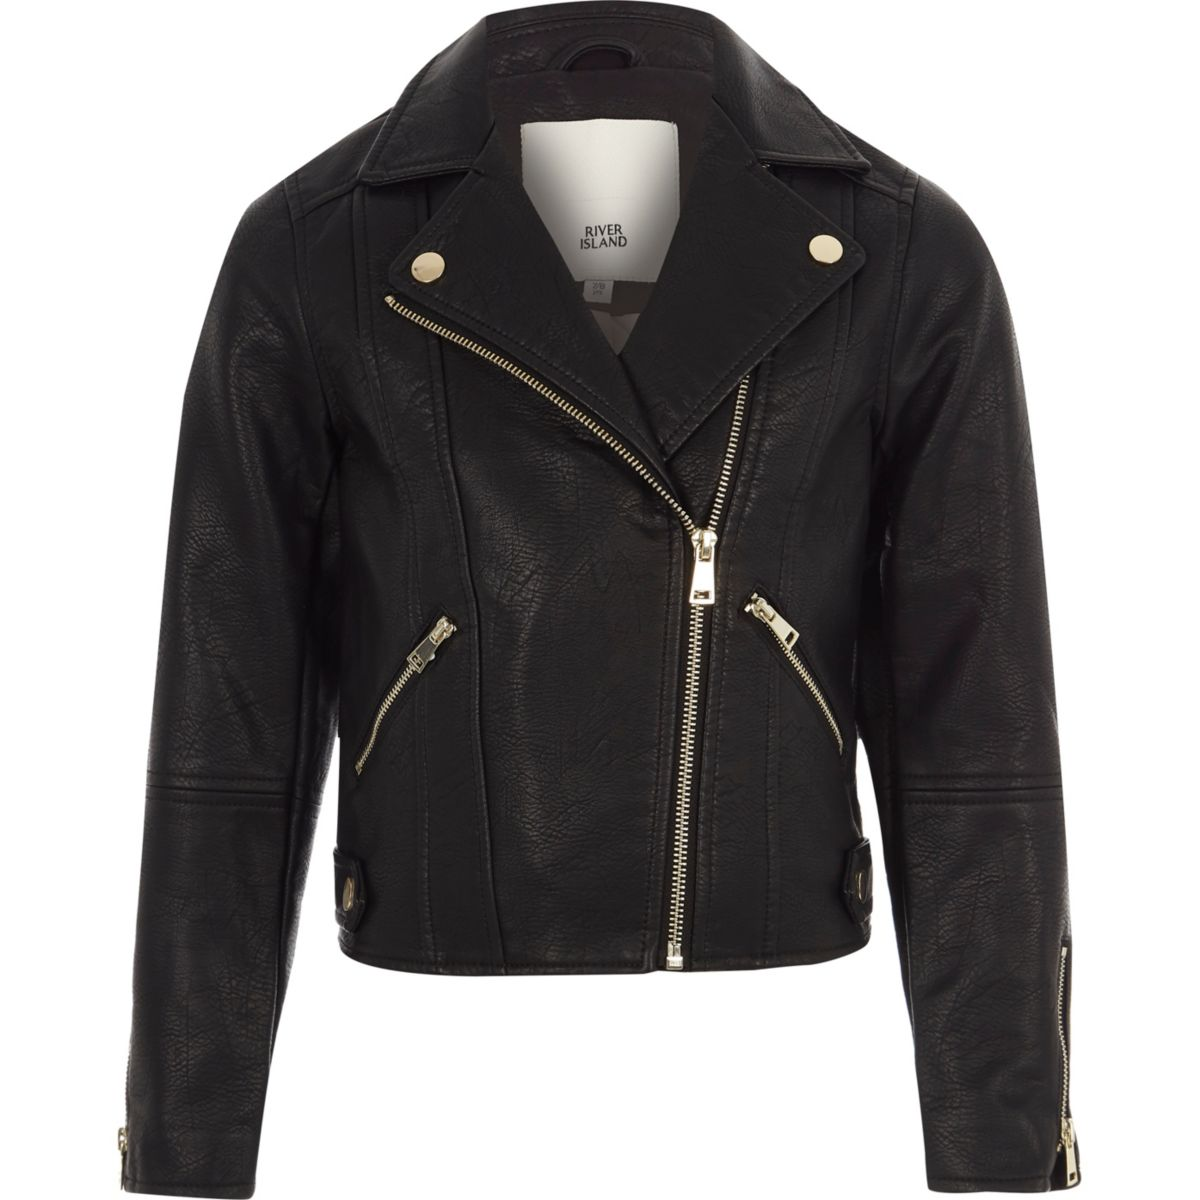 Girls black faux leather biker jacket - Jackets - Coats & Jackets ...